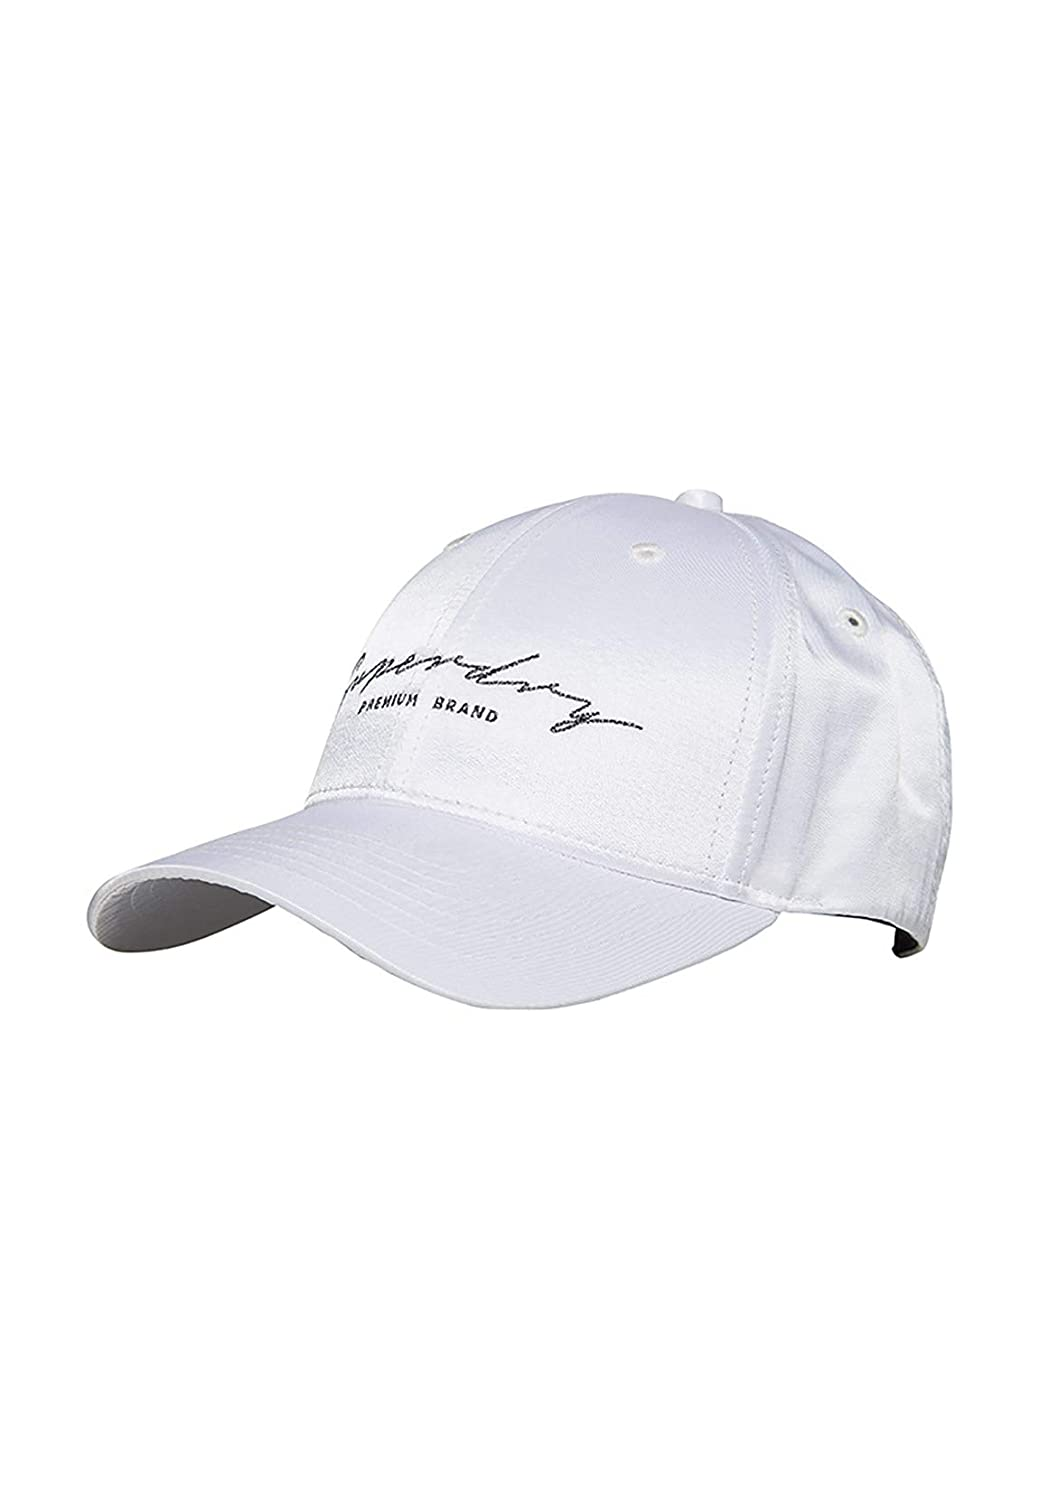 Superdry Portland - Gorra, Color Blanco: Amazon.es: Ropa y accesorios